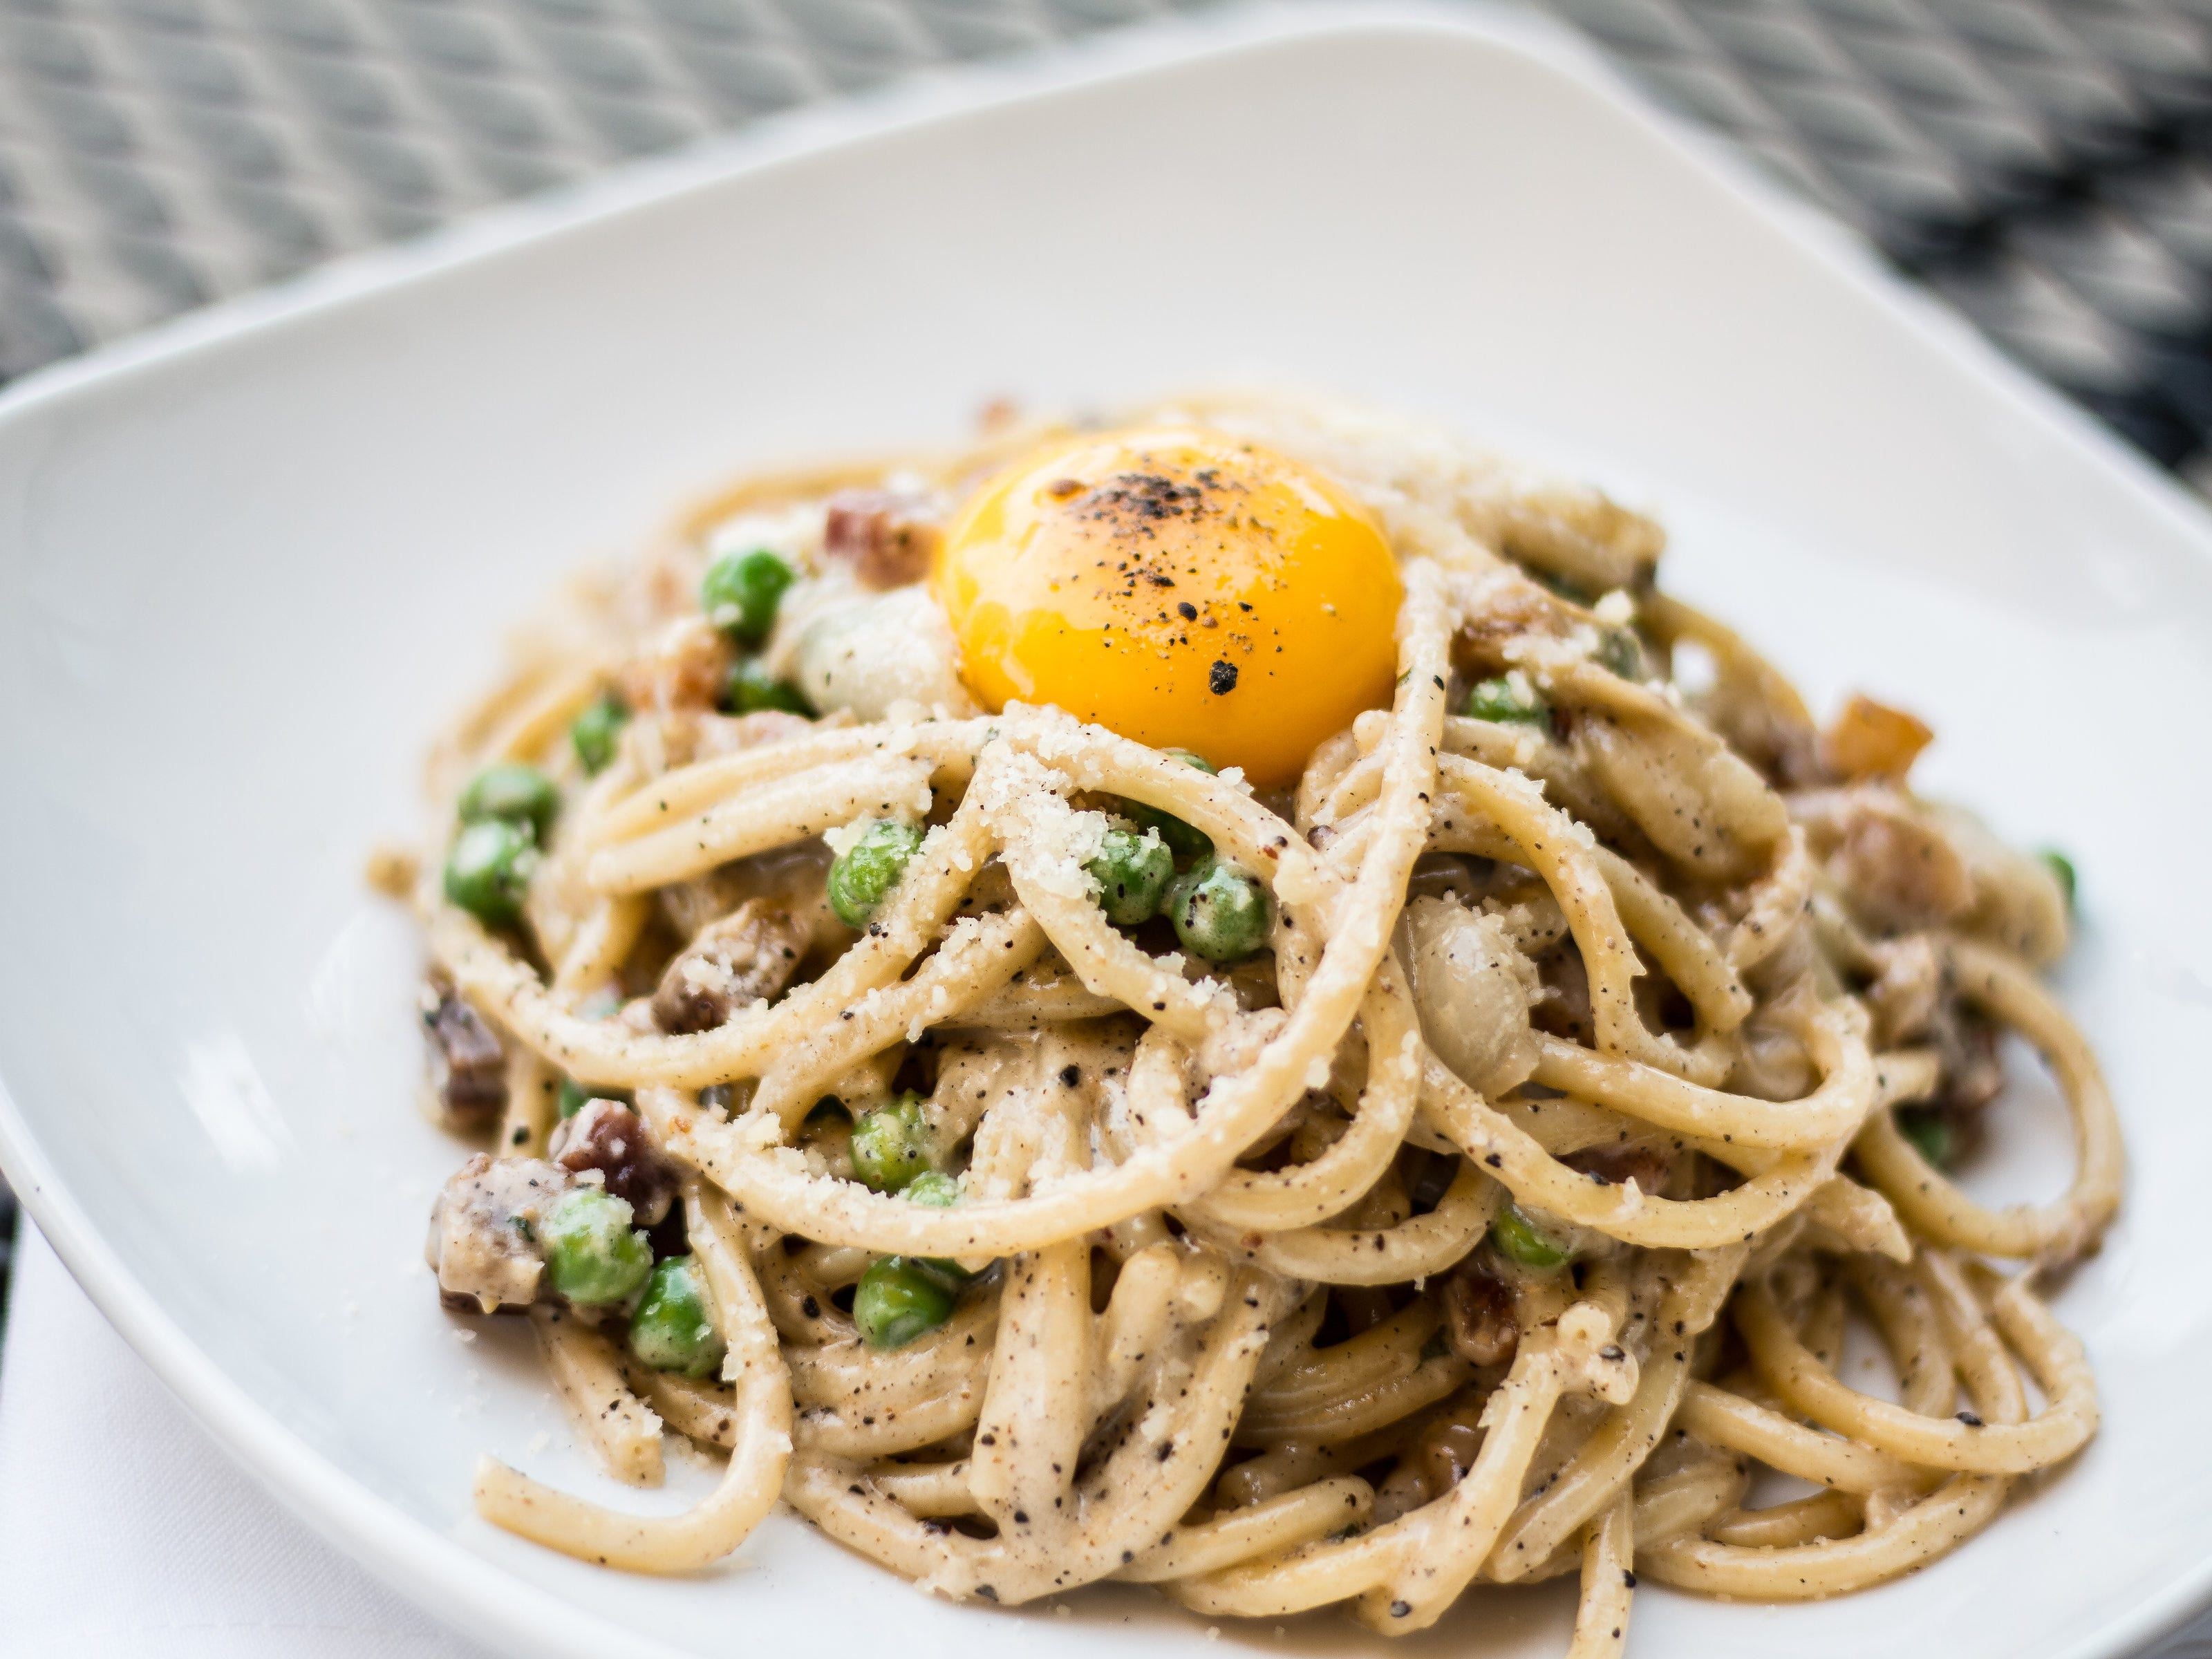 House-made bucatini carbonara with black pepper cream sauce, pancetta and peas from Cello Italian Restaurant. The Howell-based restaurant is serving its menu at Red Fox in Royal Oak until Dec. 31, 2018, as a test run for a future Cello on Main Street.